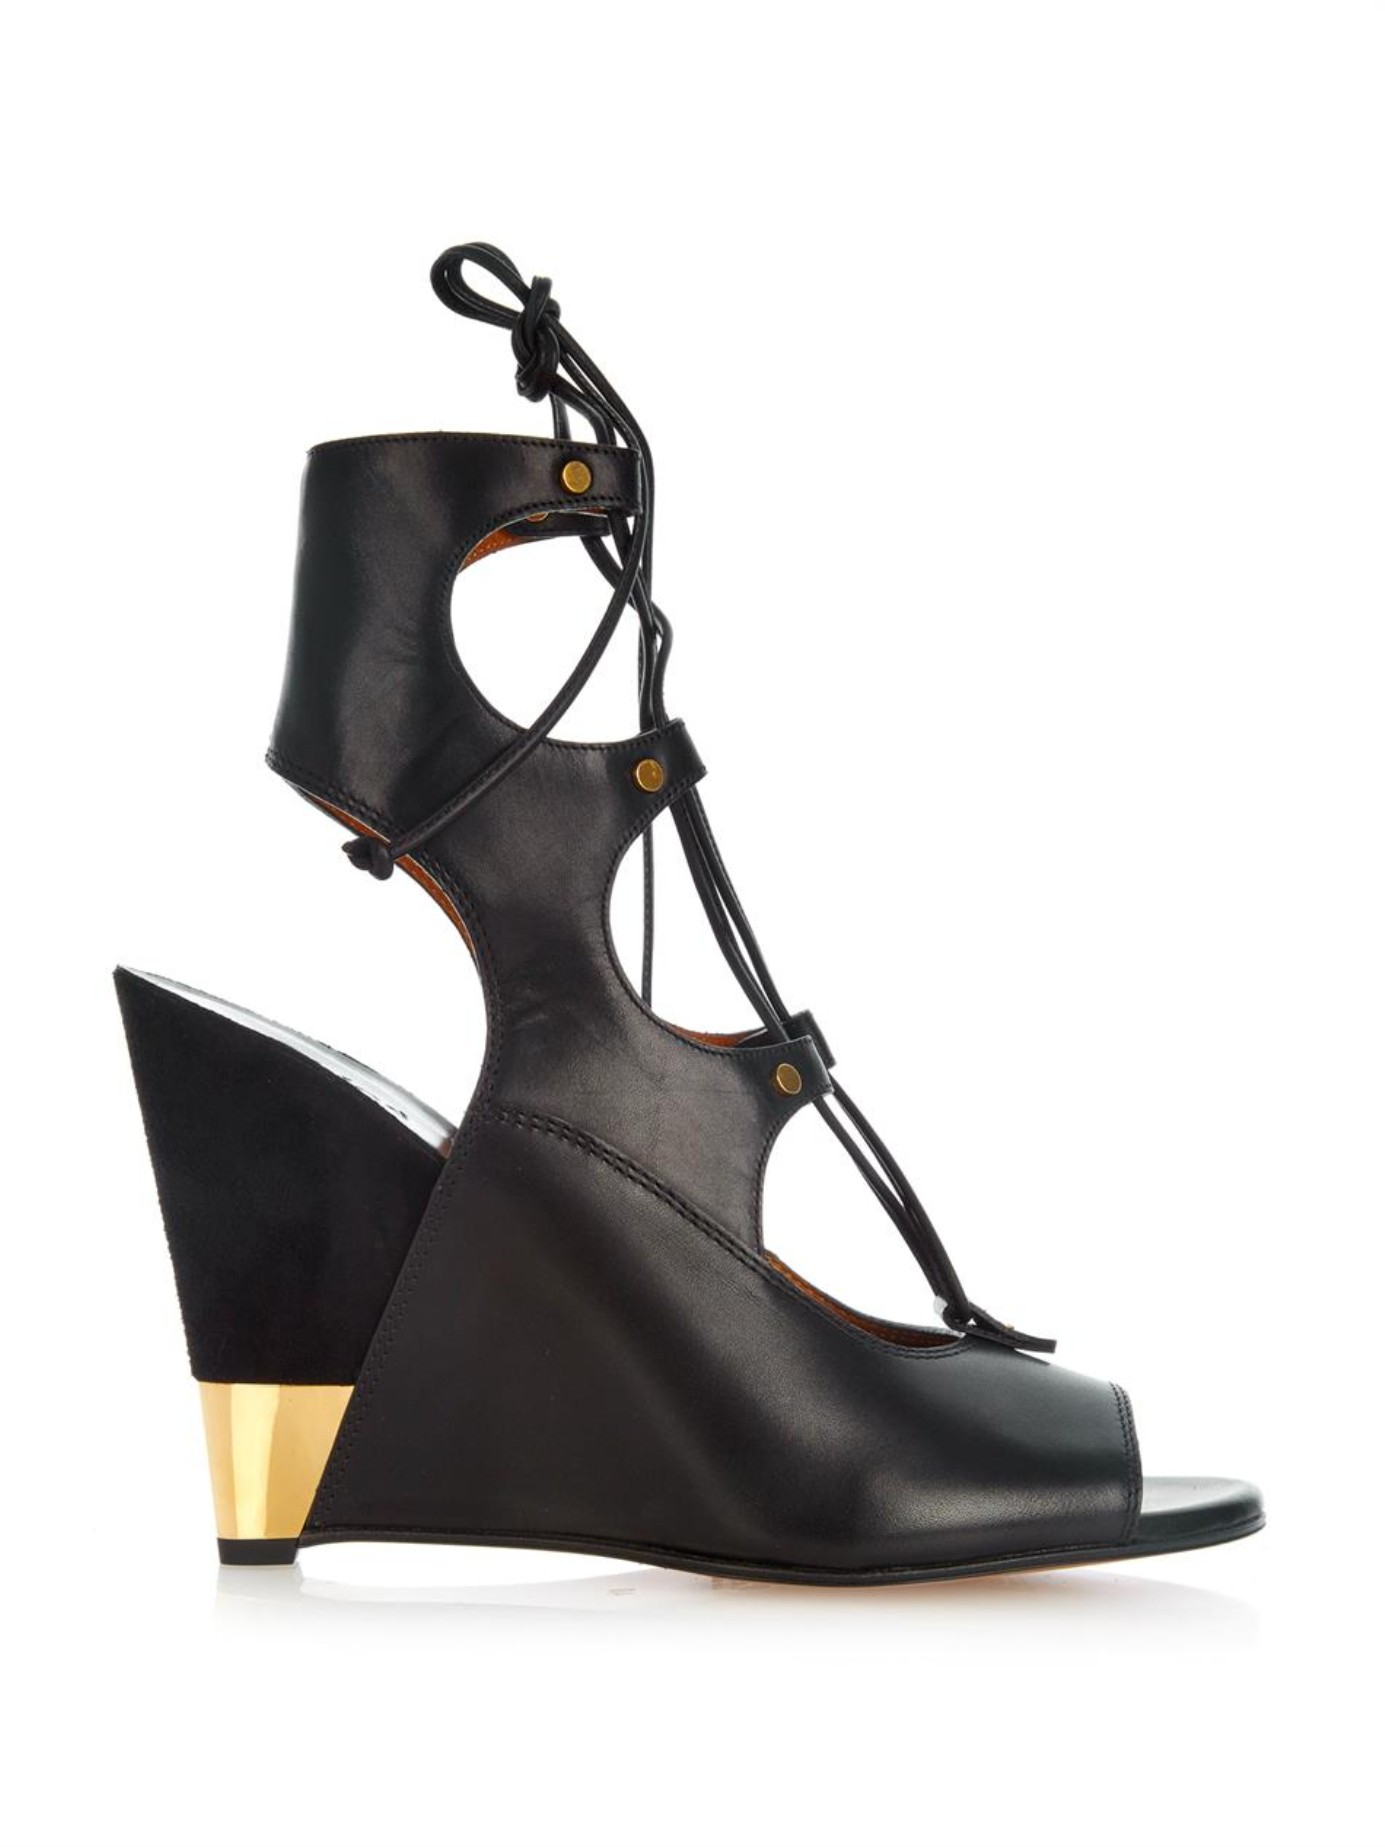 Chloé Patent Leather Slingback Wedges for nice tKQbv